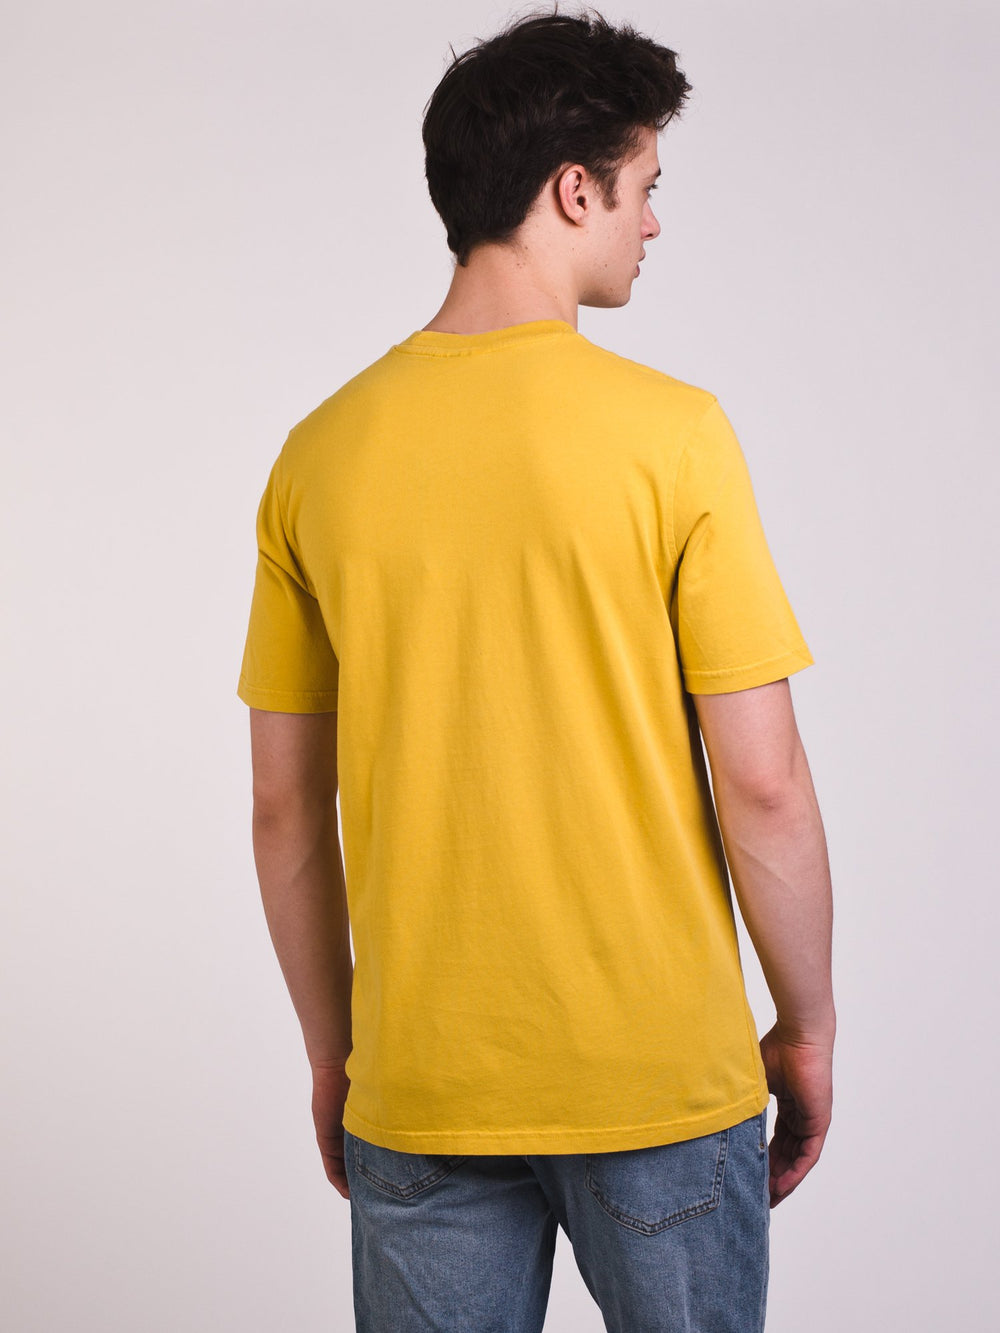 MENS TREFOIL SHORT SLEEVE T SHIRT